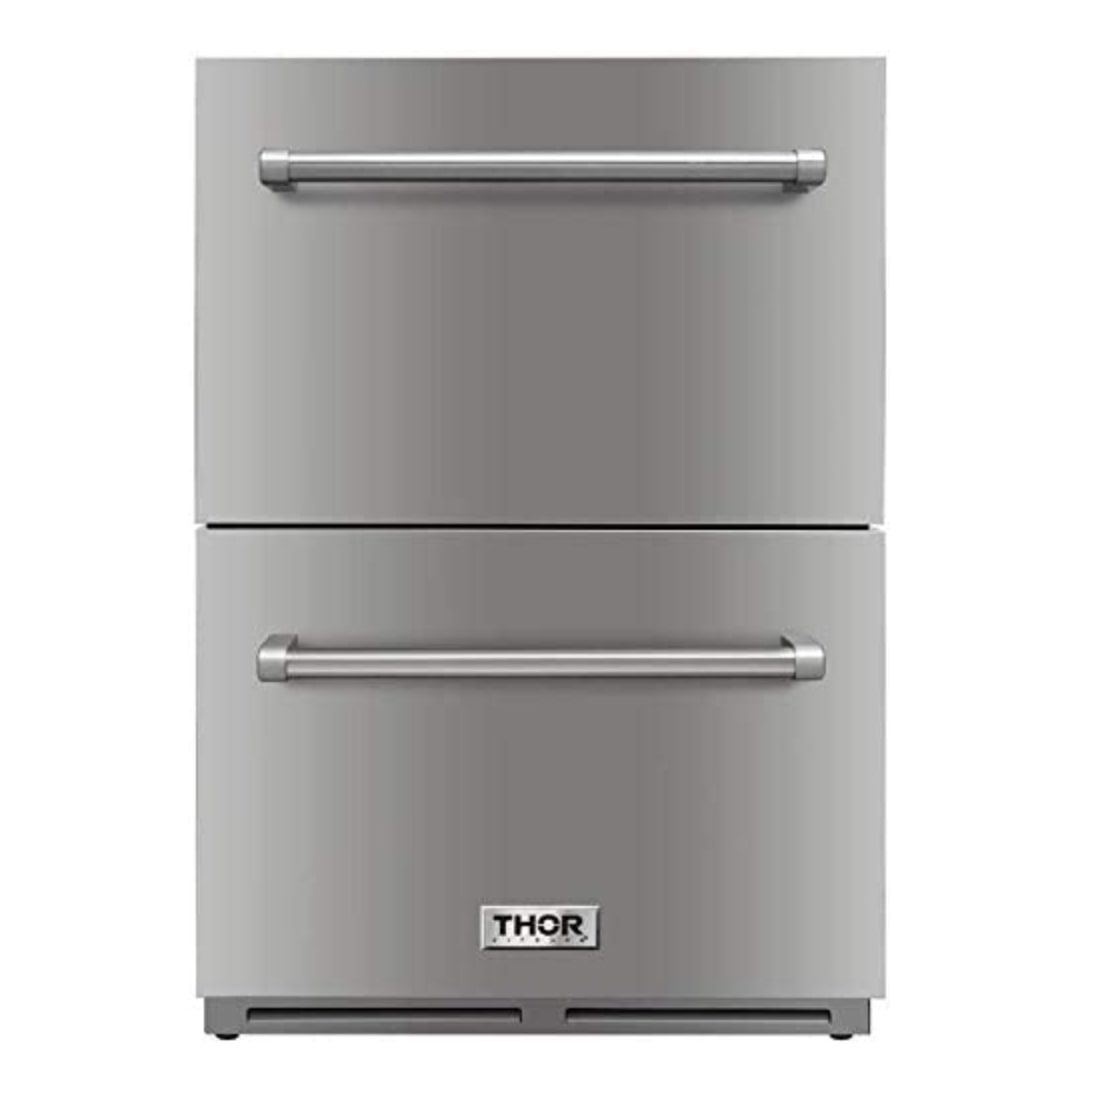 thor-kitchen-built-in-double-drawer-refrigerator